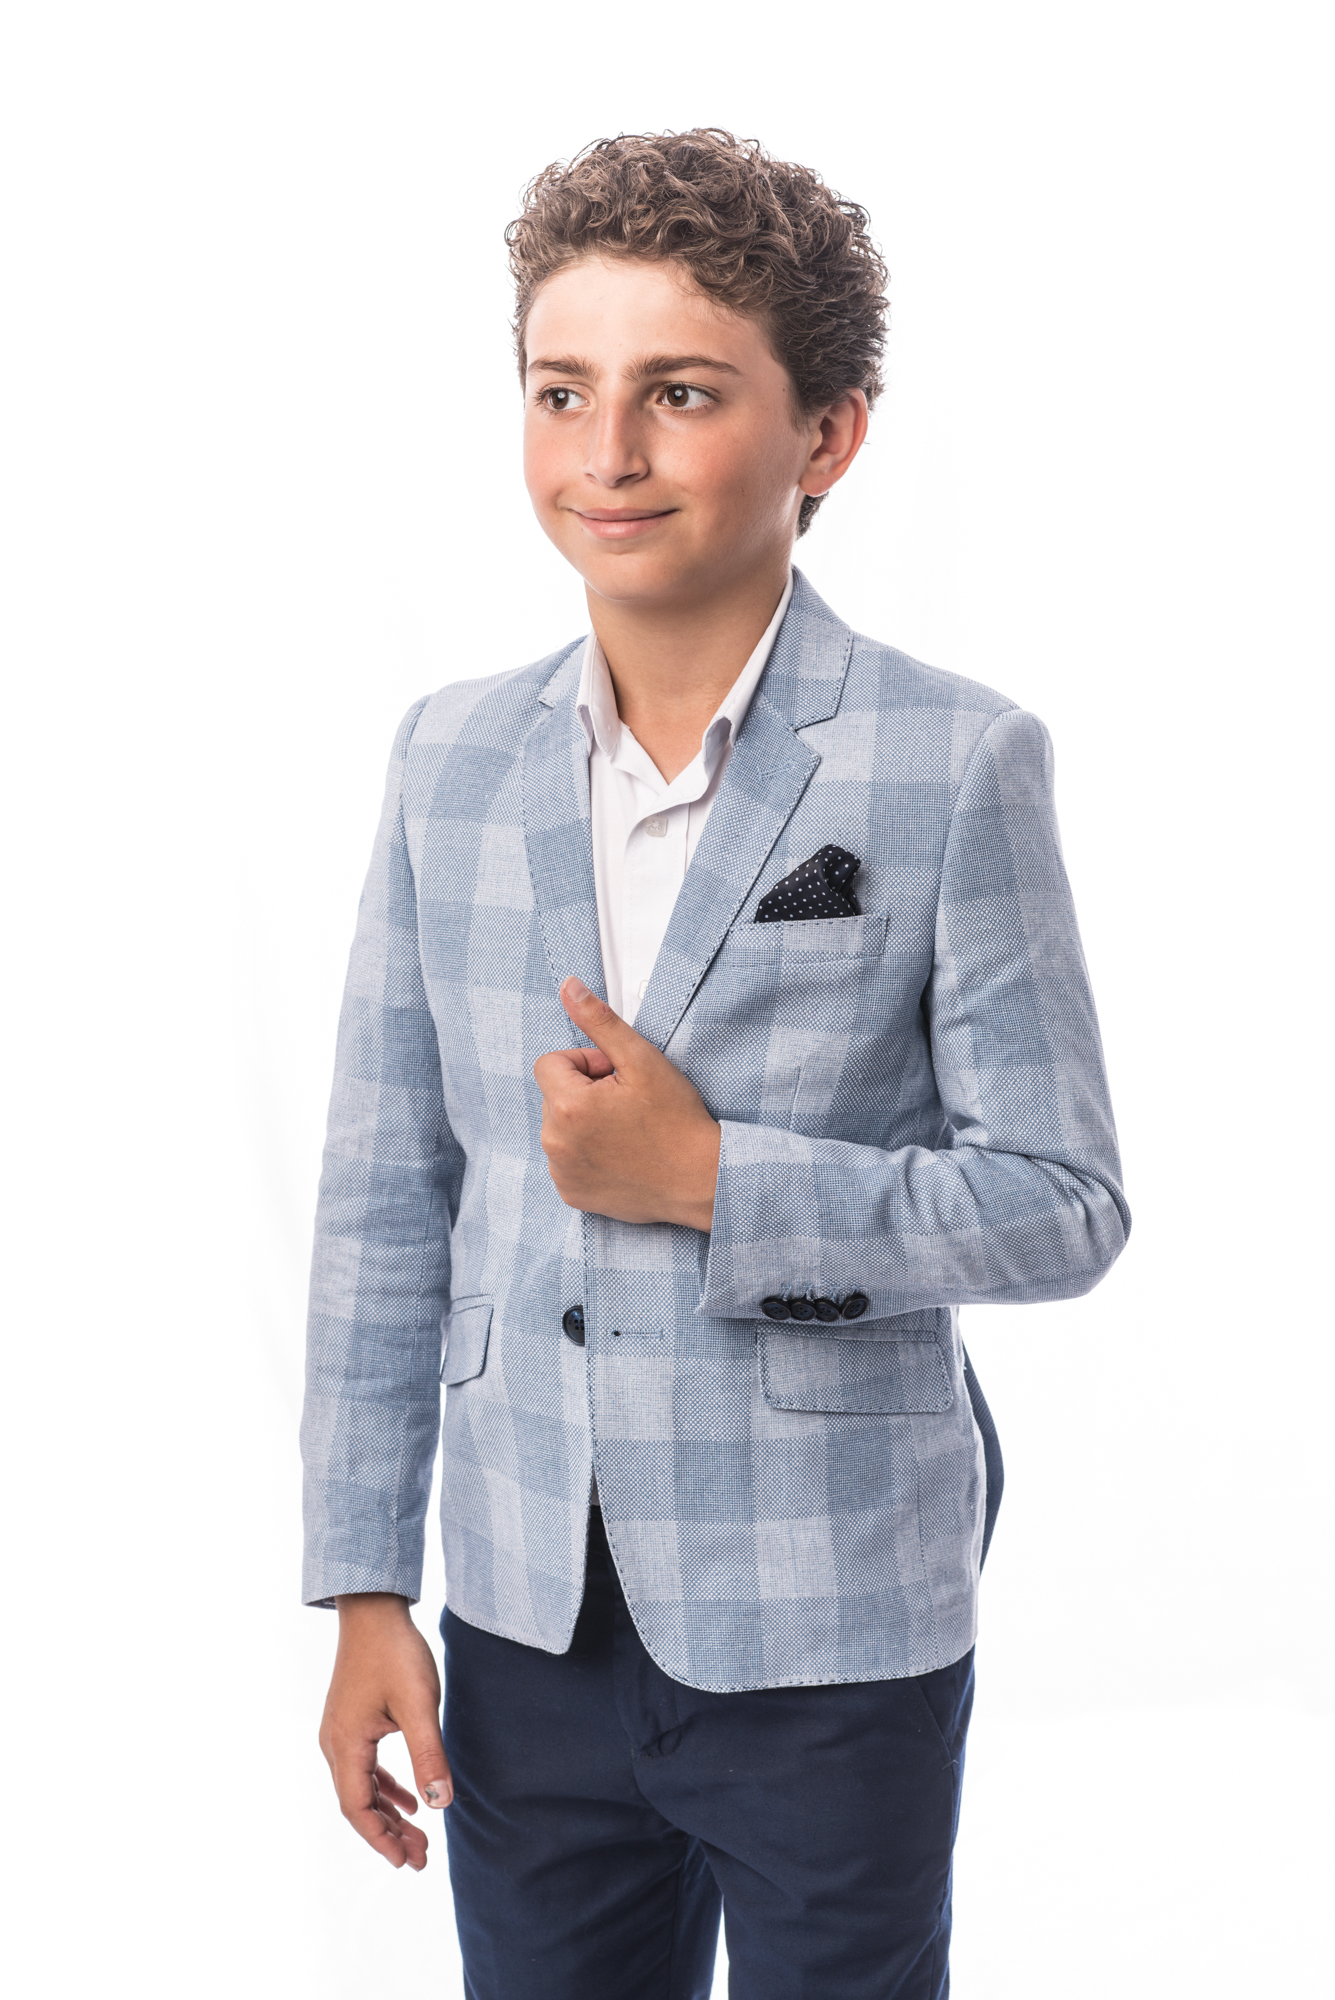 Big Checkerboard Boys Blazers / Sports Coat Jacket EBBS1708B